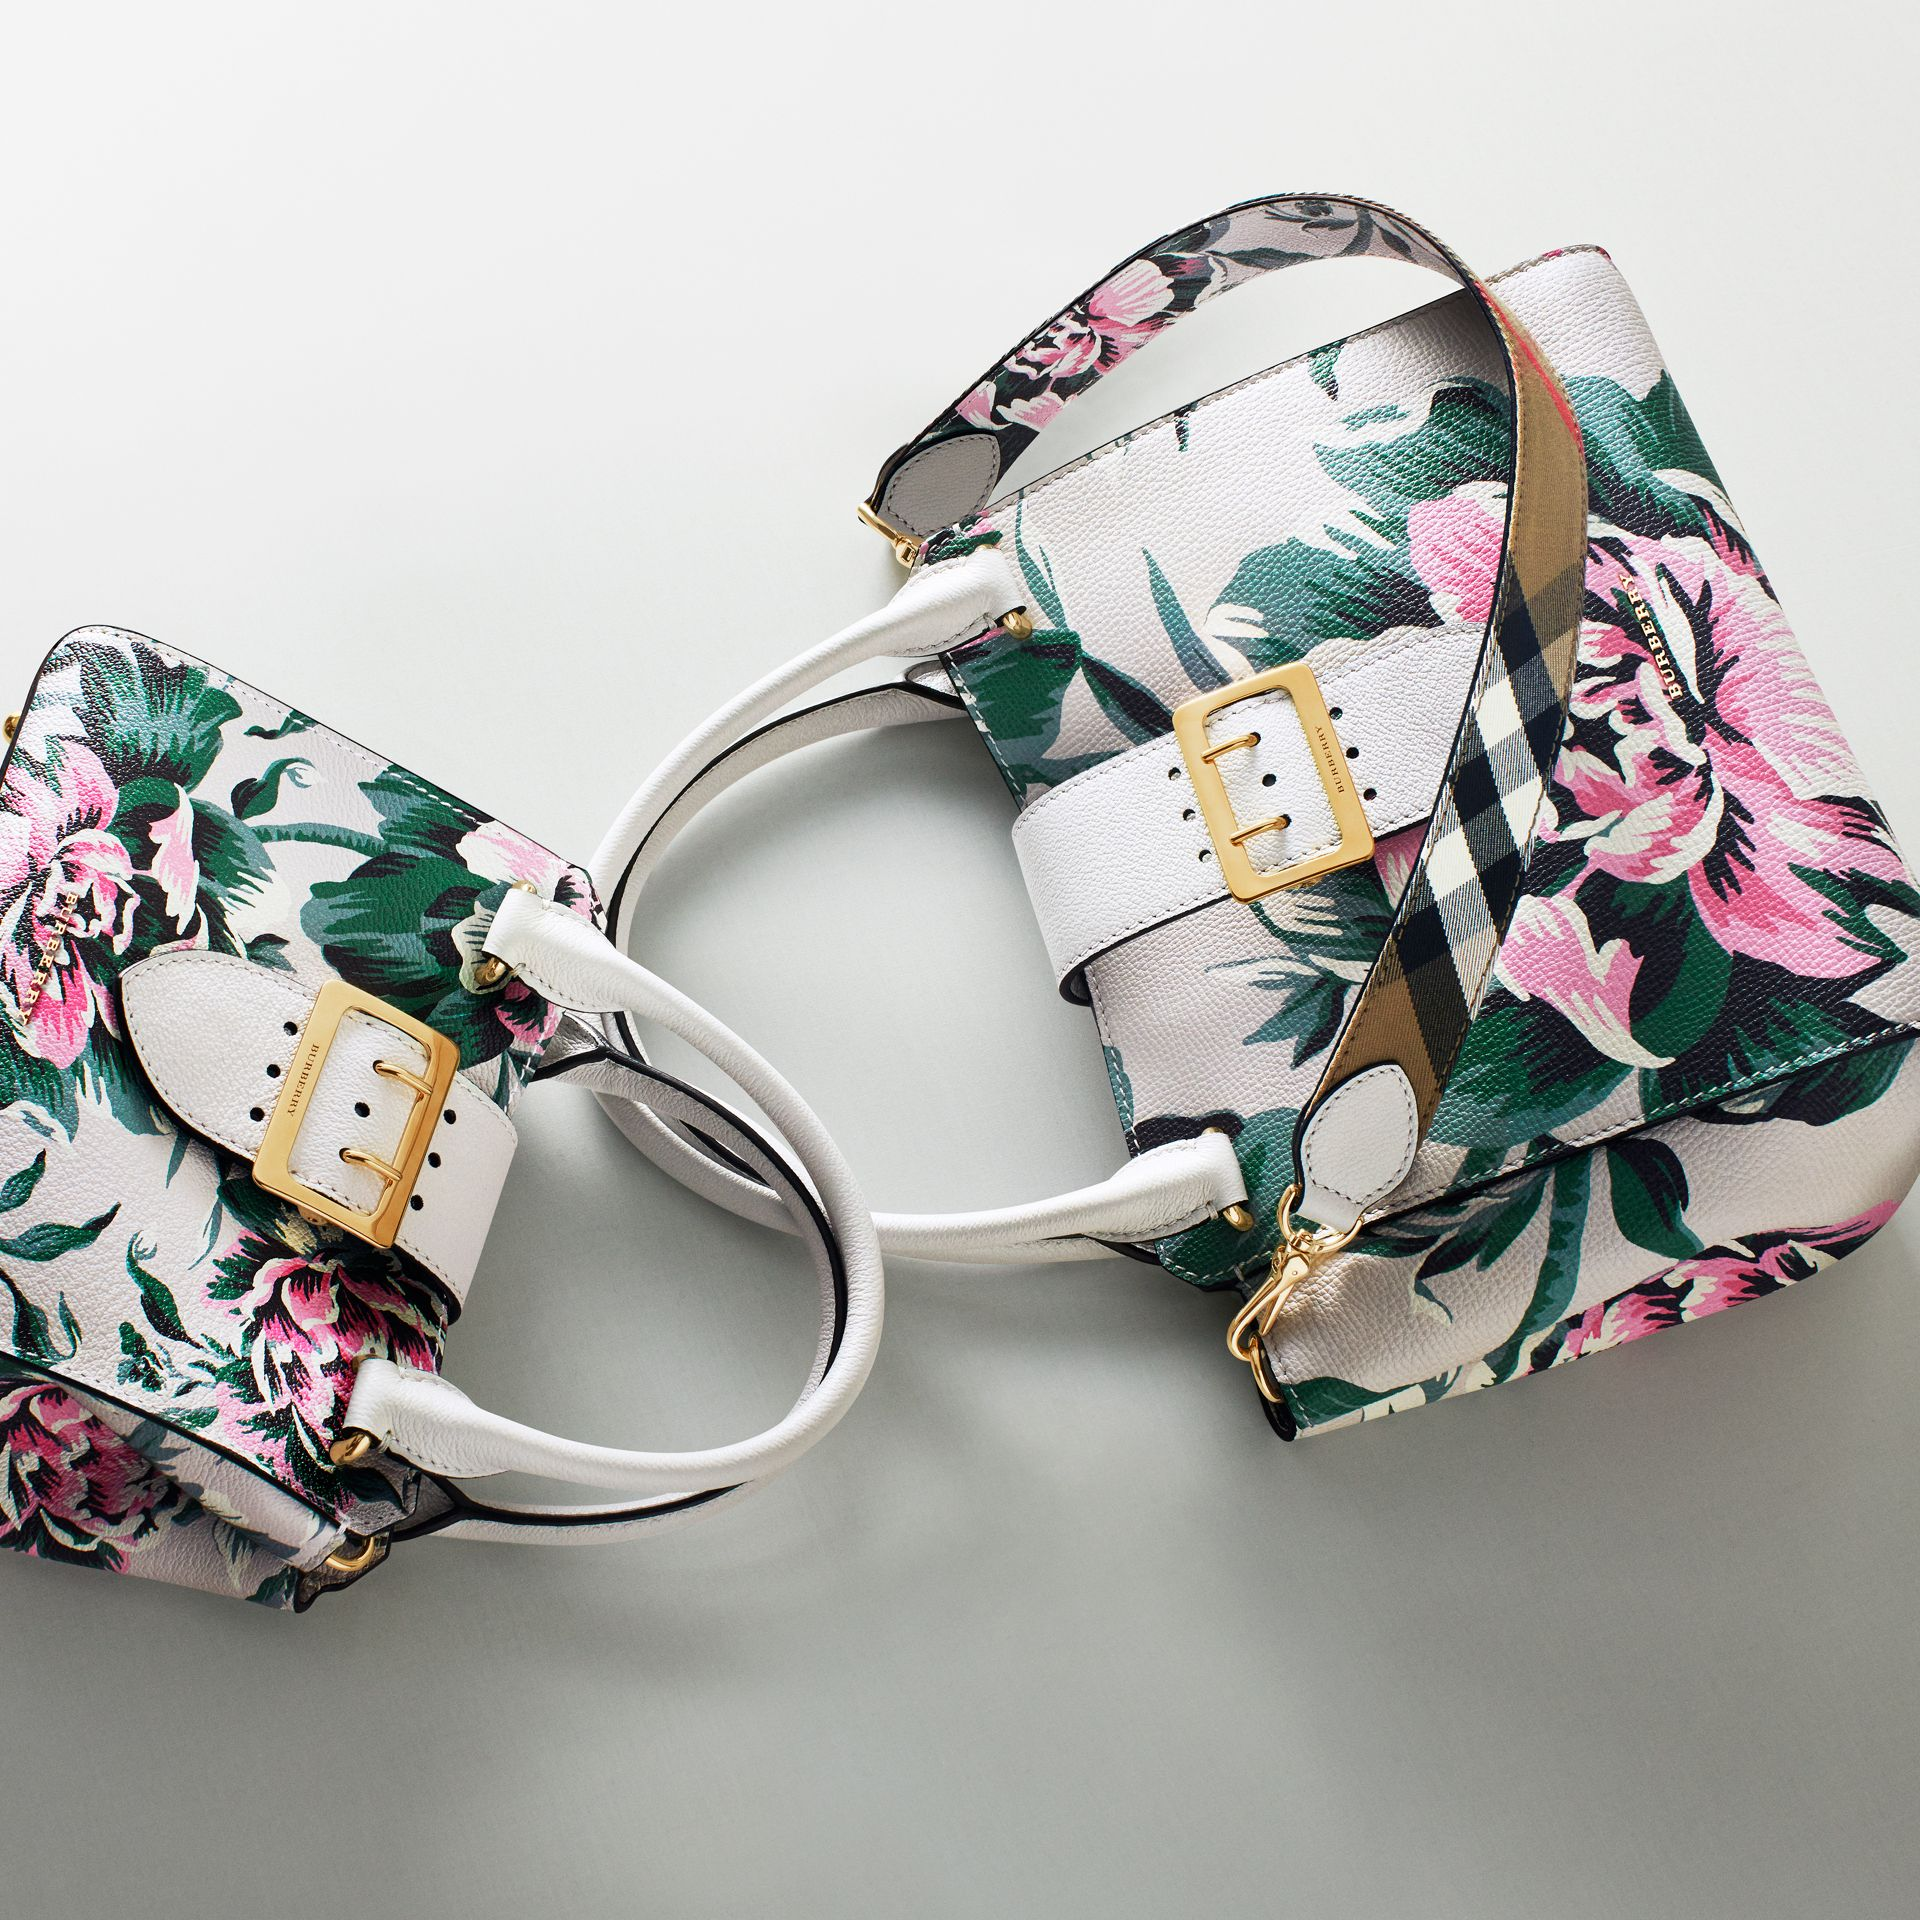 Natural/emerald green The Medium Buckle Tote in Peony Rose Print Leather Natural/emerald Green - gallery image 10